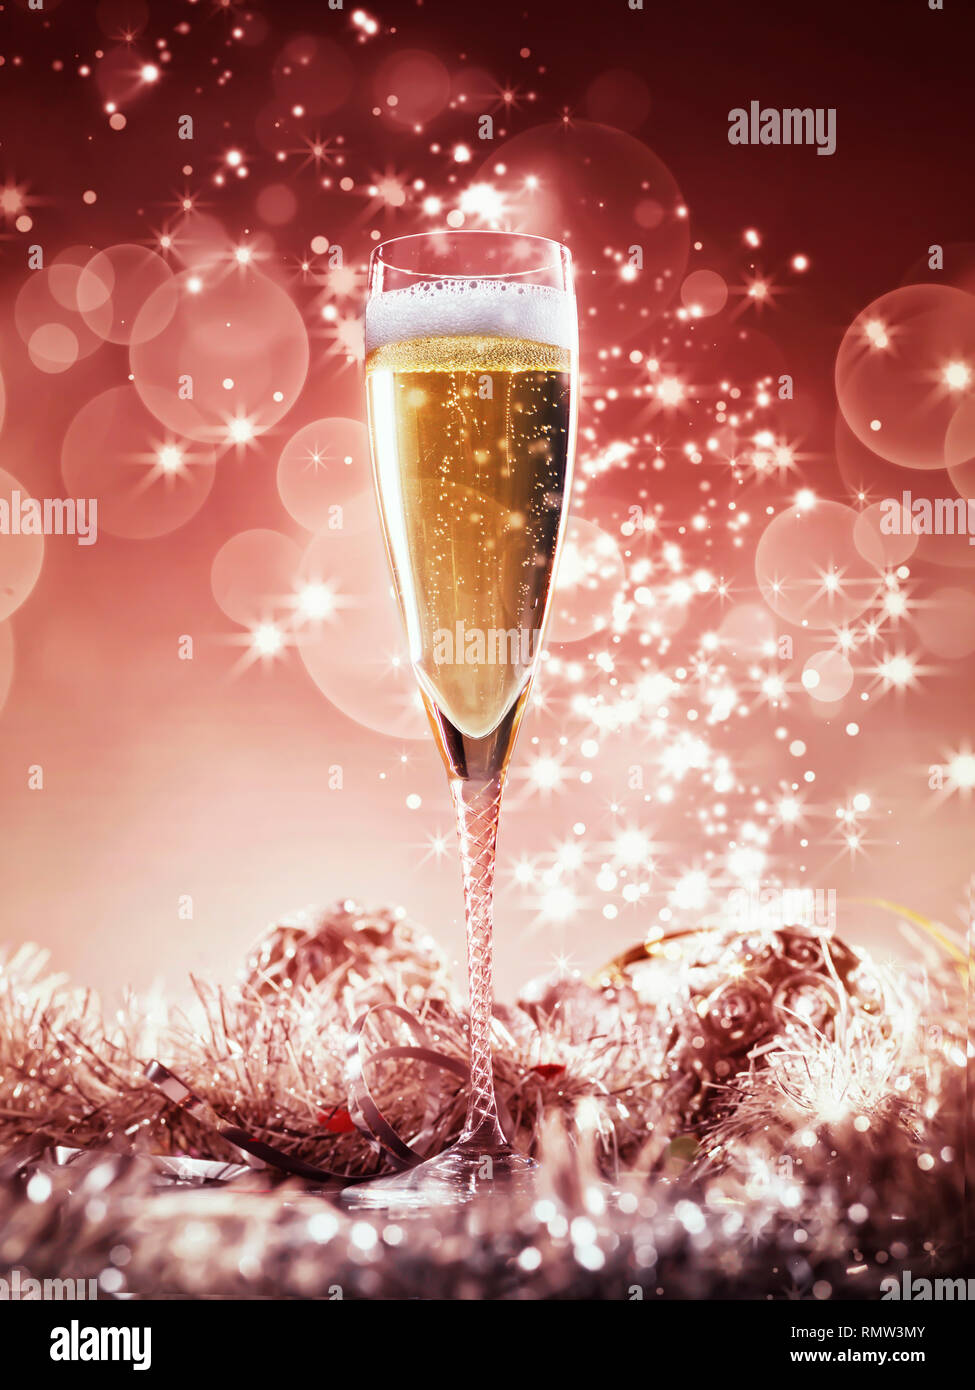 Champagne Glass And Red And Silver Decoration On Silver Shiny